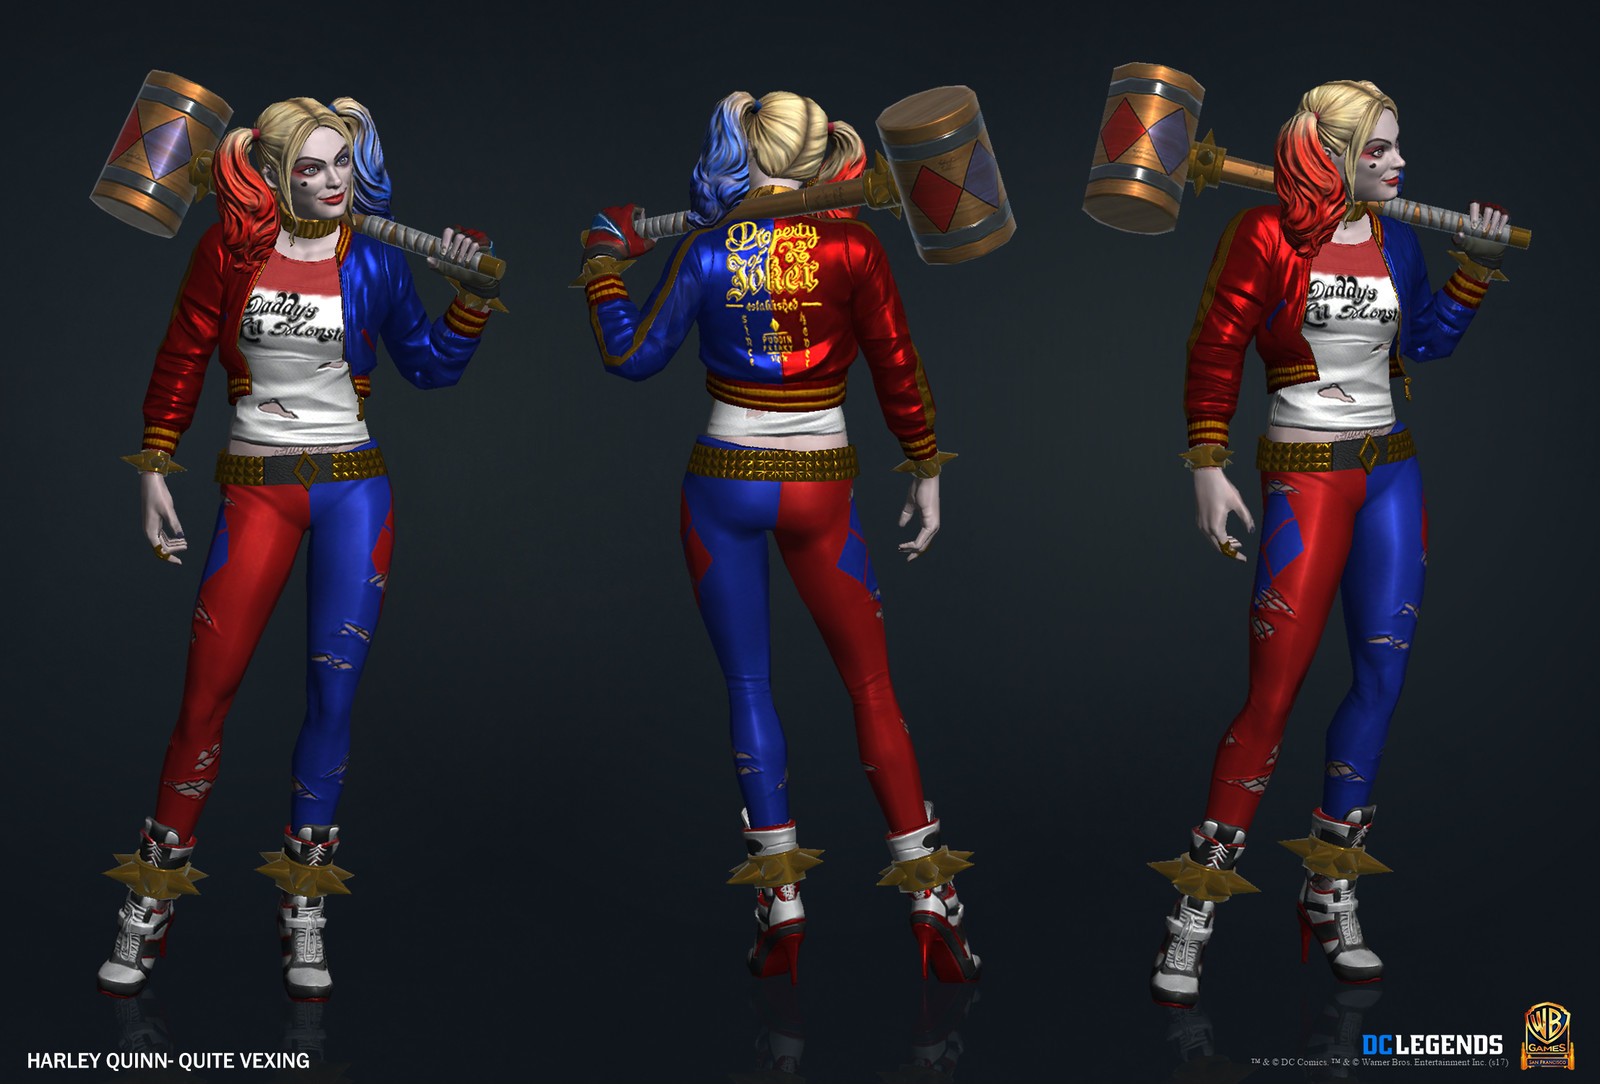 Harley Quinn Suicide Squad Legendary High Poly, Low Poly and Textures/Material work done by me.